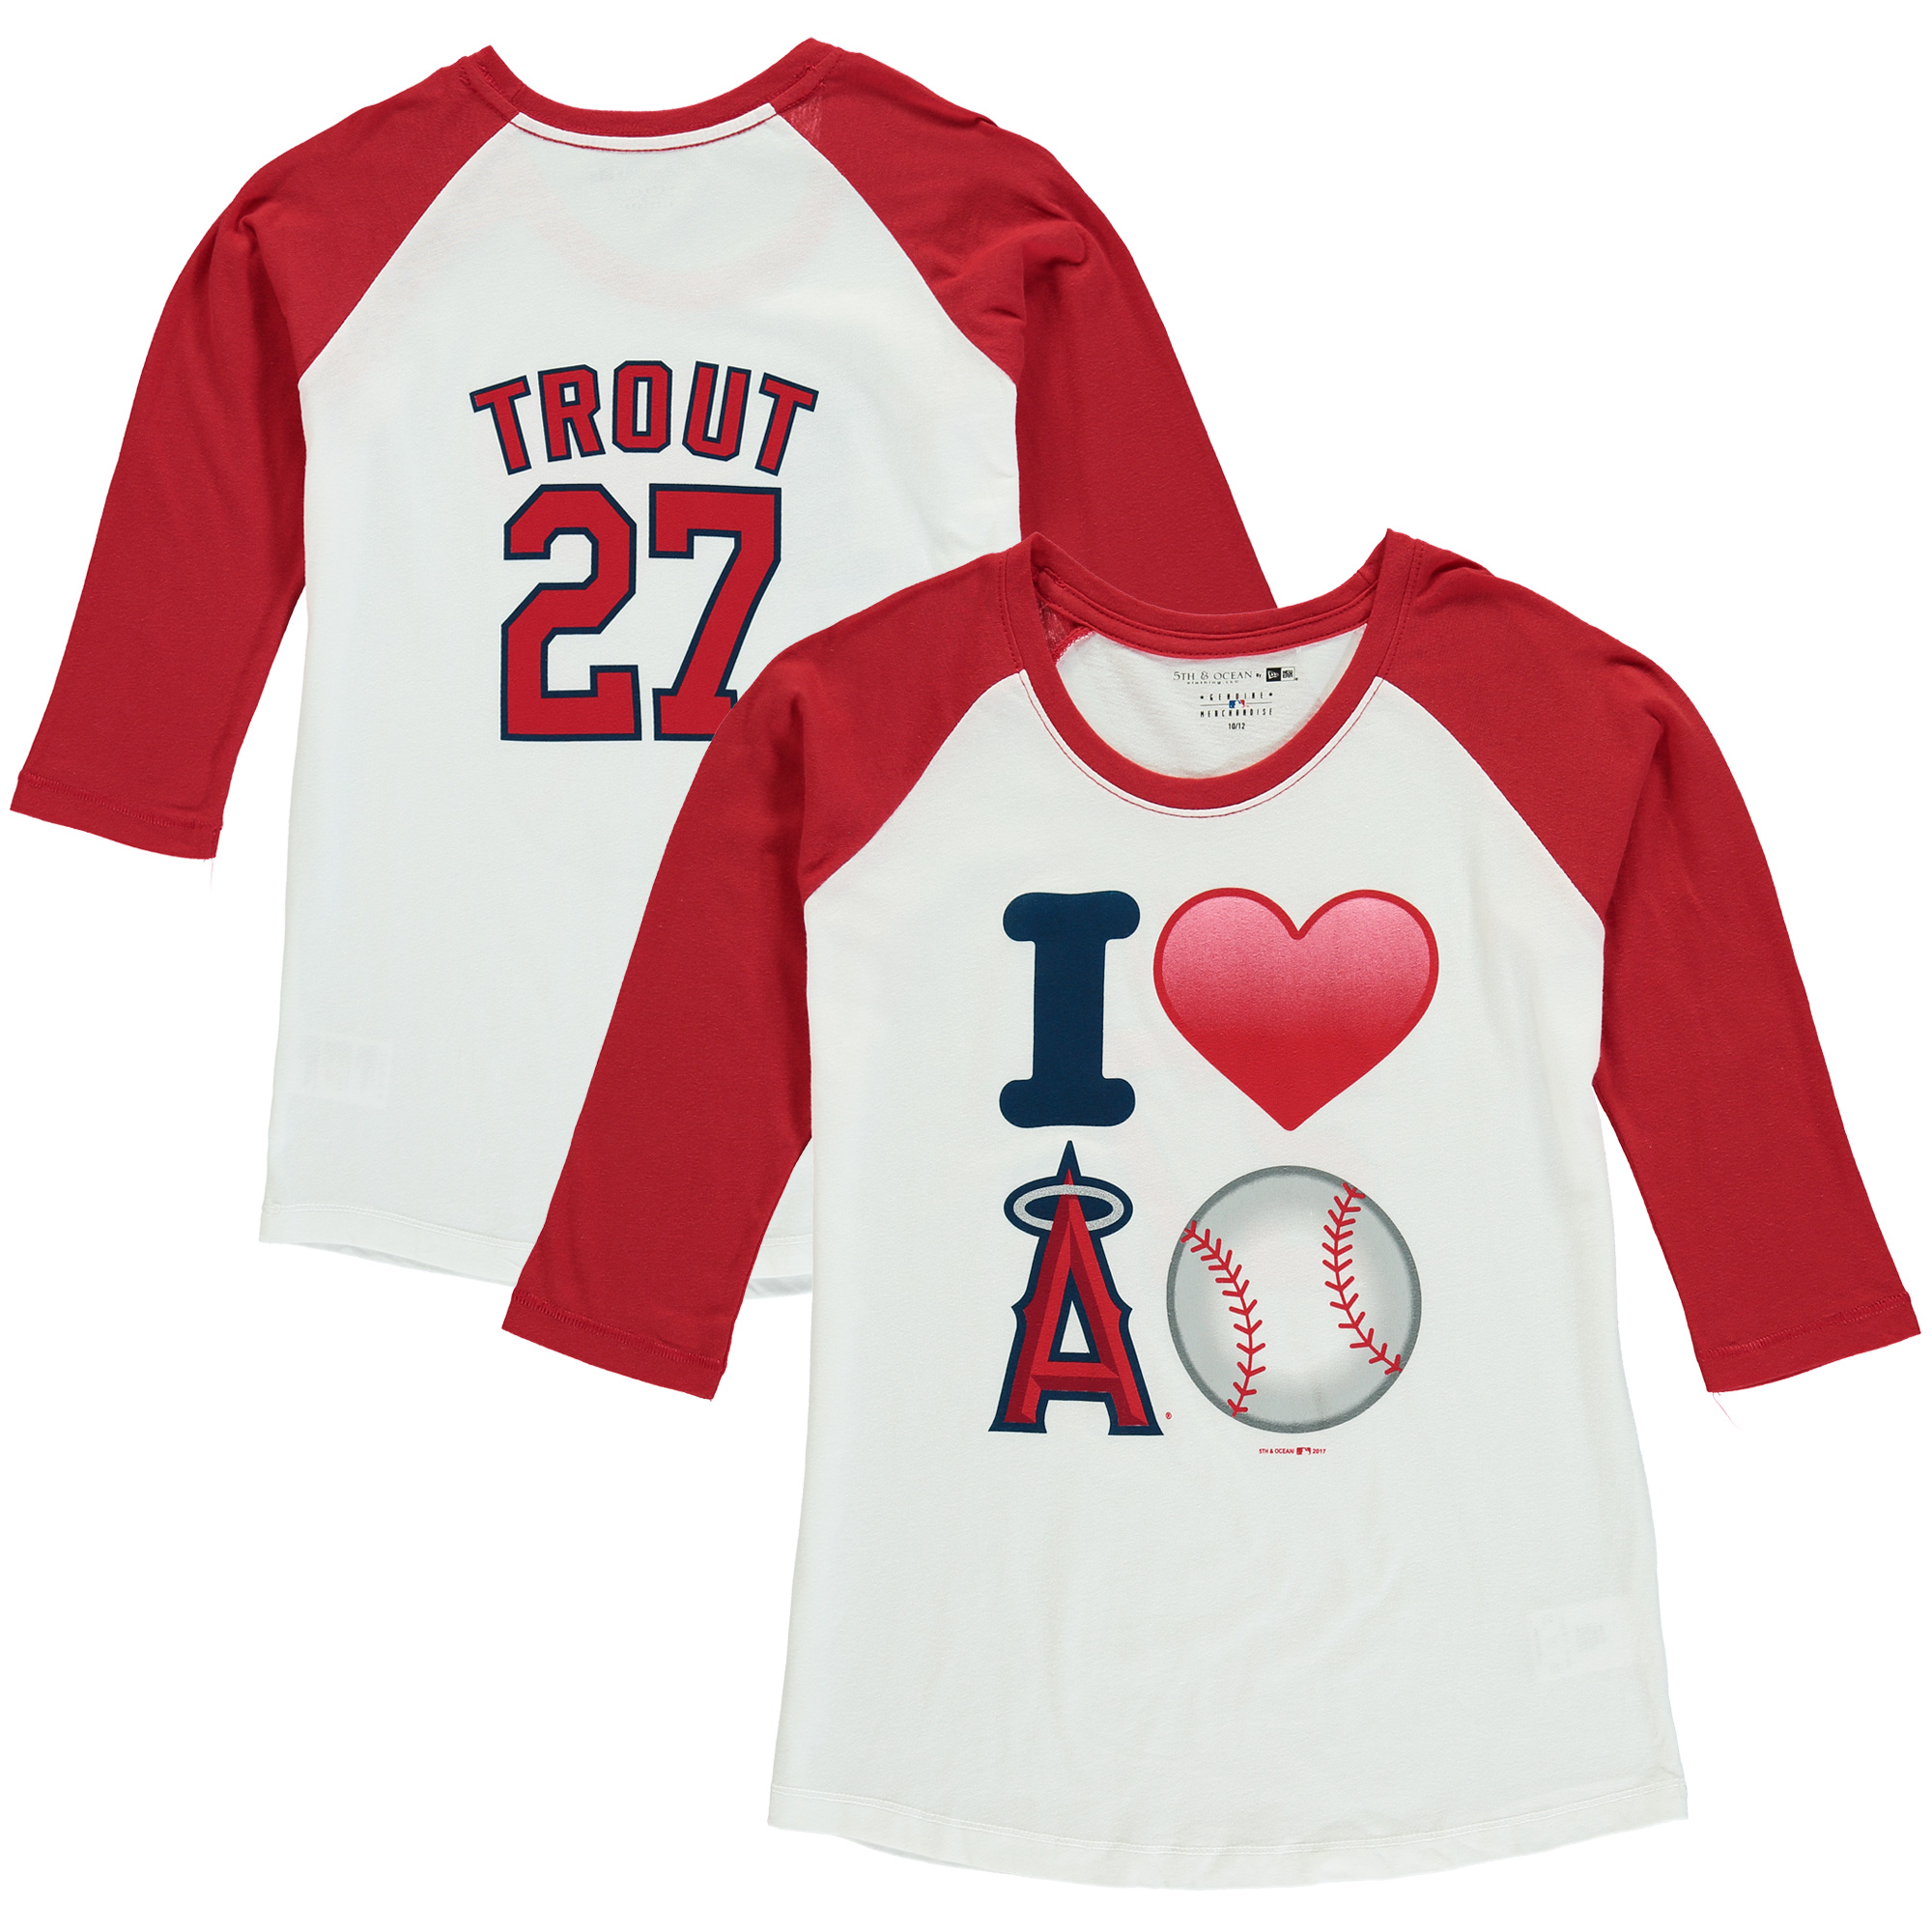 Mike Trout Los Angeles Angels 5th & Ocean by New Era Girls Youth Emoji Love Player Name & Number 3/4-Sleeve Raglan T-Shirt - White/Red